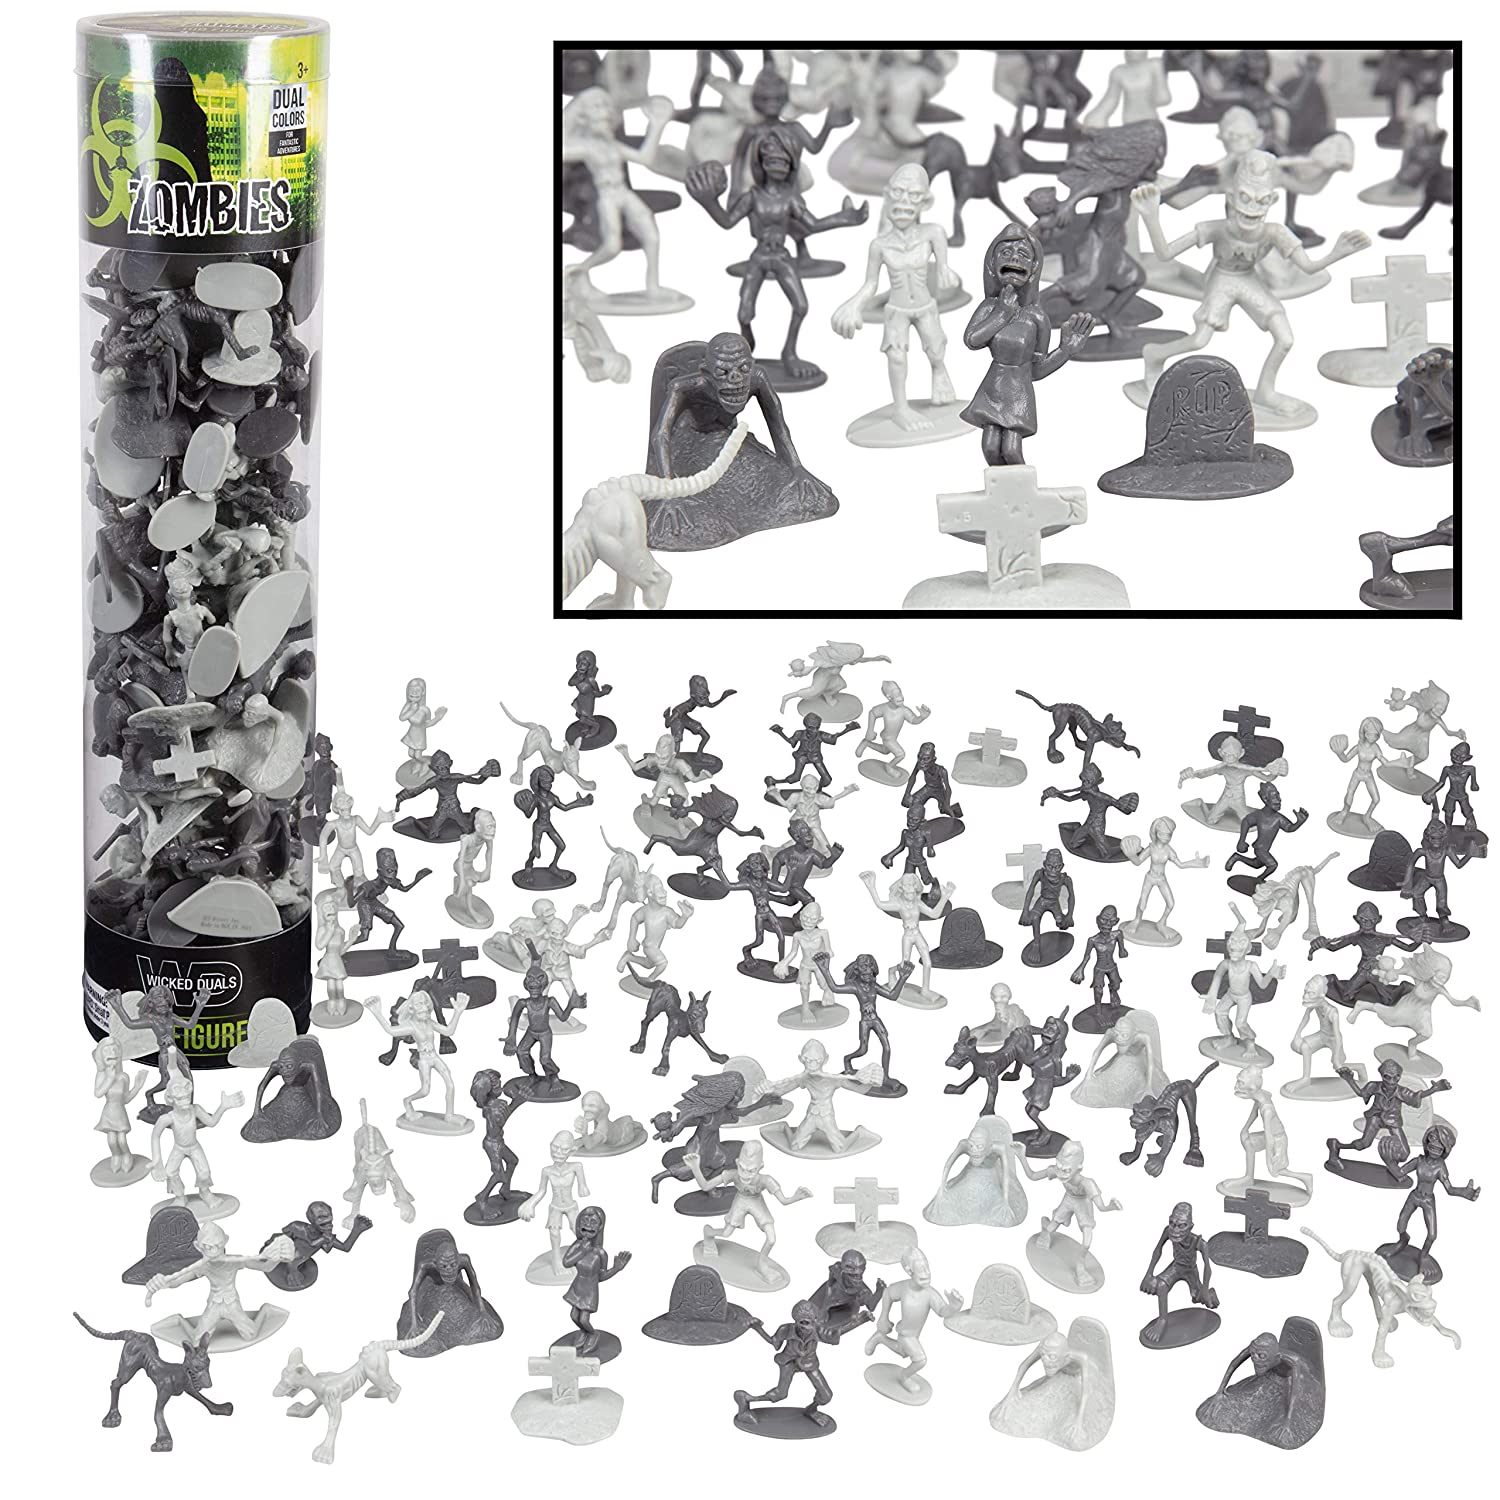 SCS Direct Zombie Army Action Figures - Big Bucket of 100 Zombies - Zombies, Pets, Graves, and Humans for Playtime, Decoration and Parties